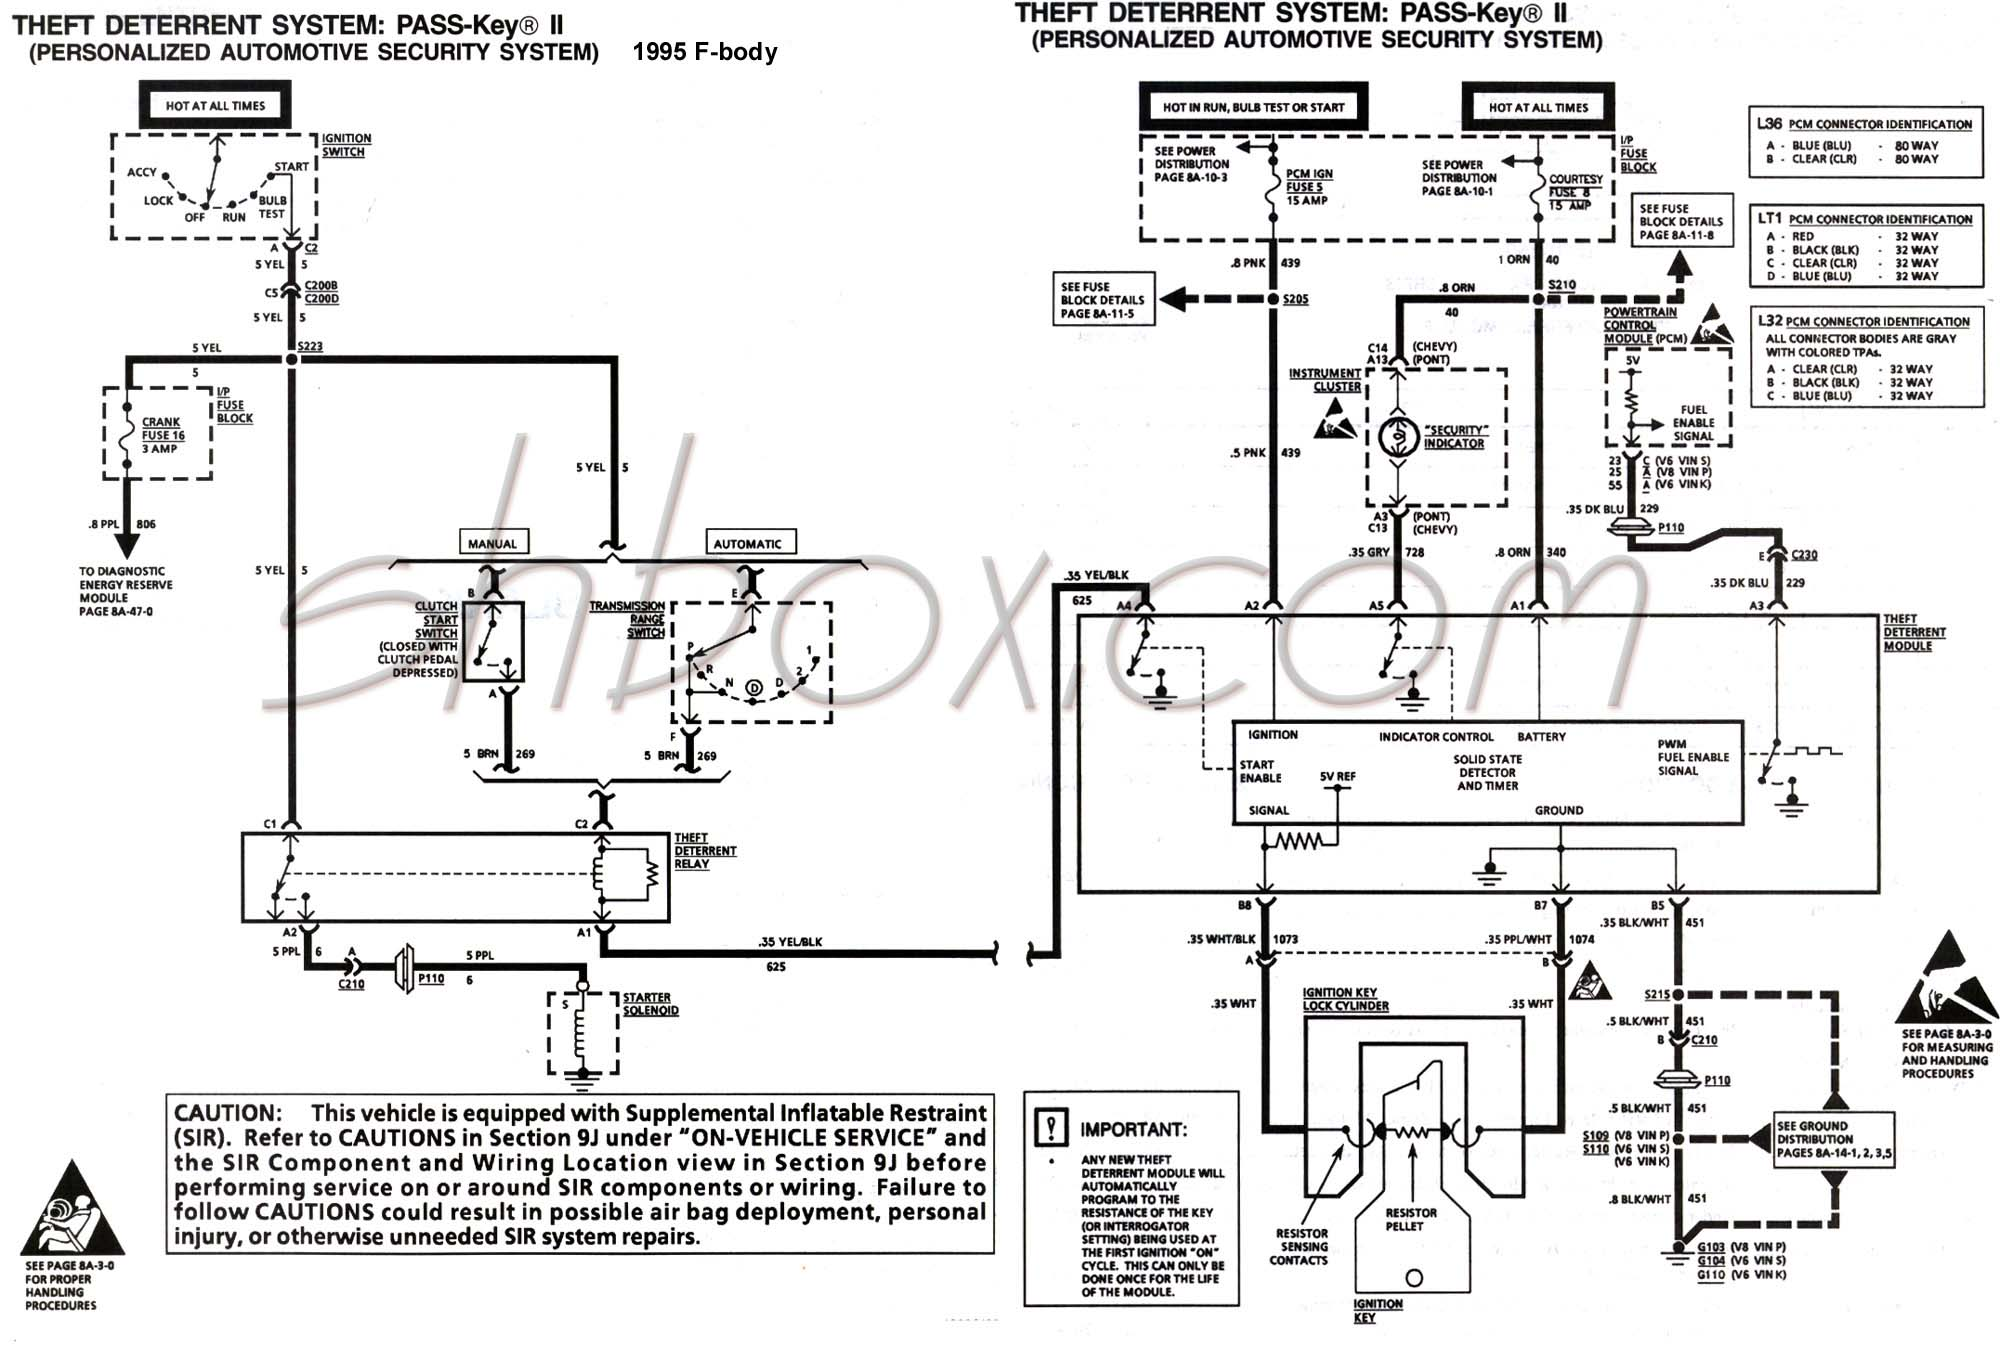 hight resolution of fuse diagram 1995 pontiac trans am lt1 engine wiring diagram paper4th gen lt1 f body tech